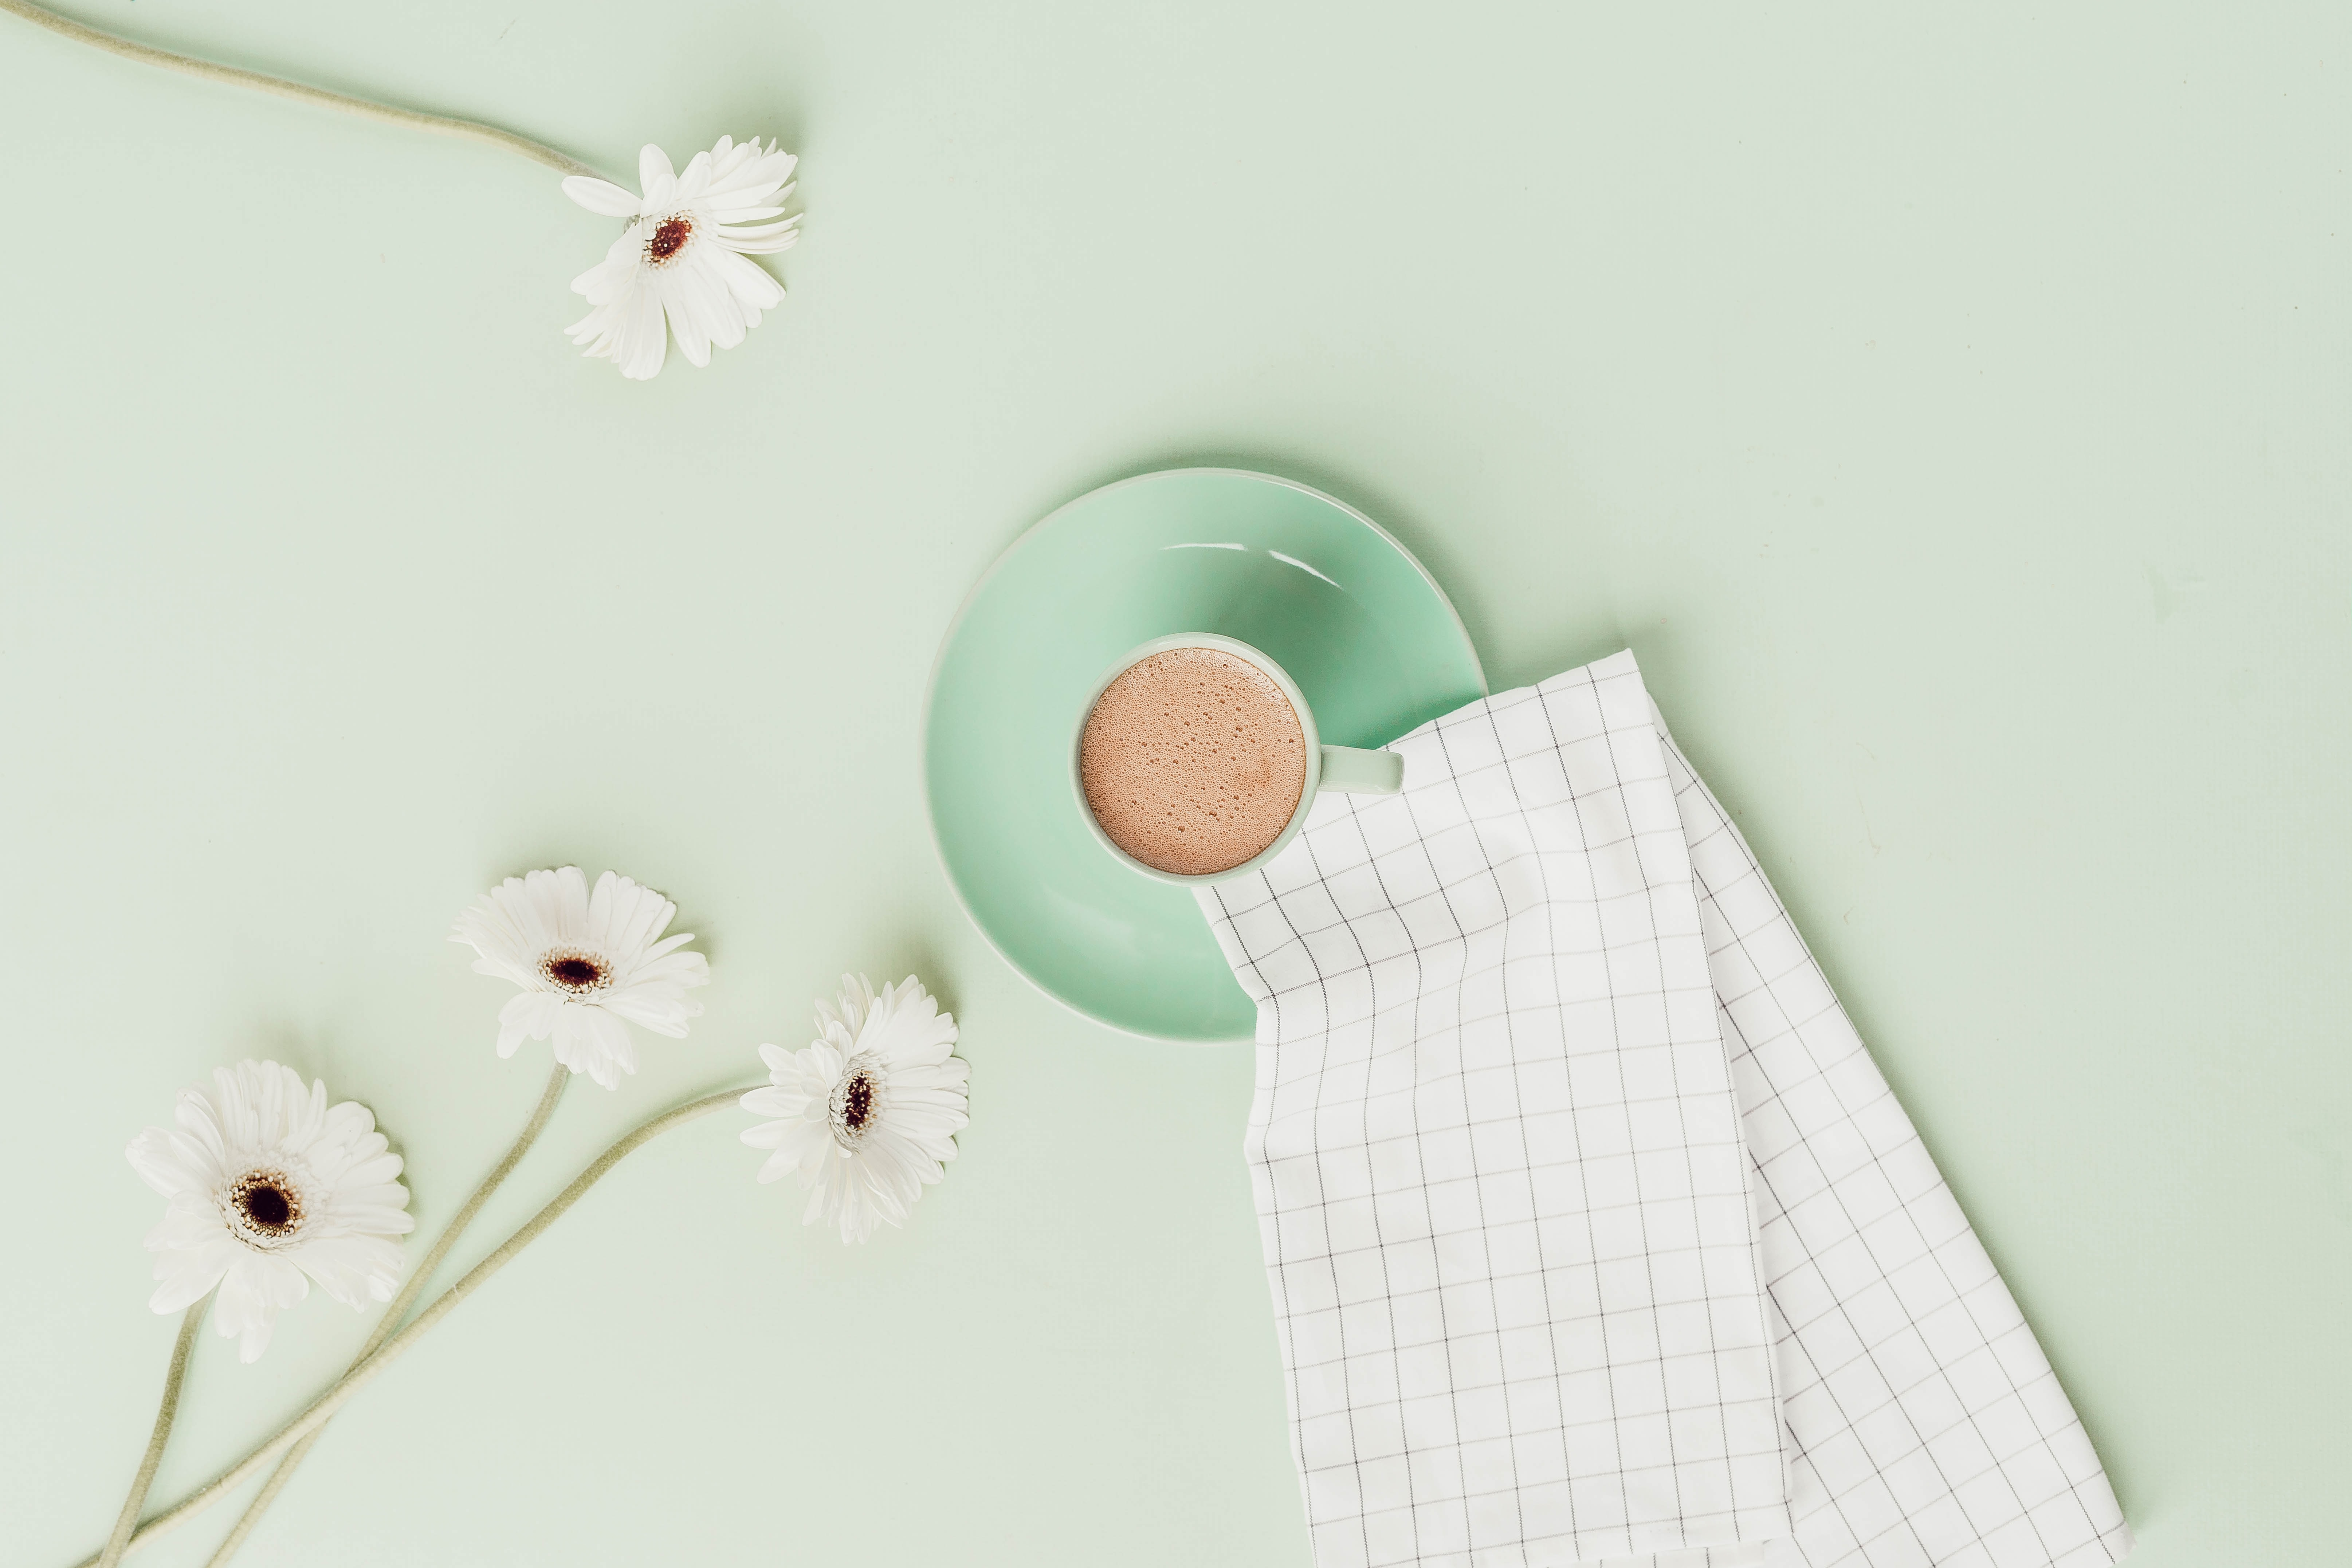 cup of beverage with daisies